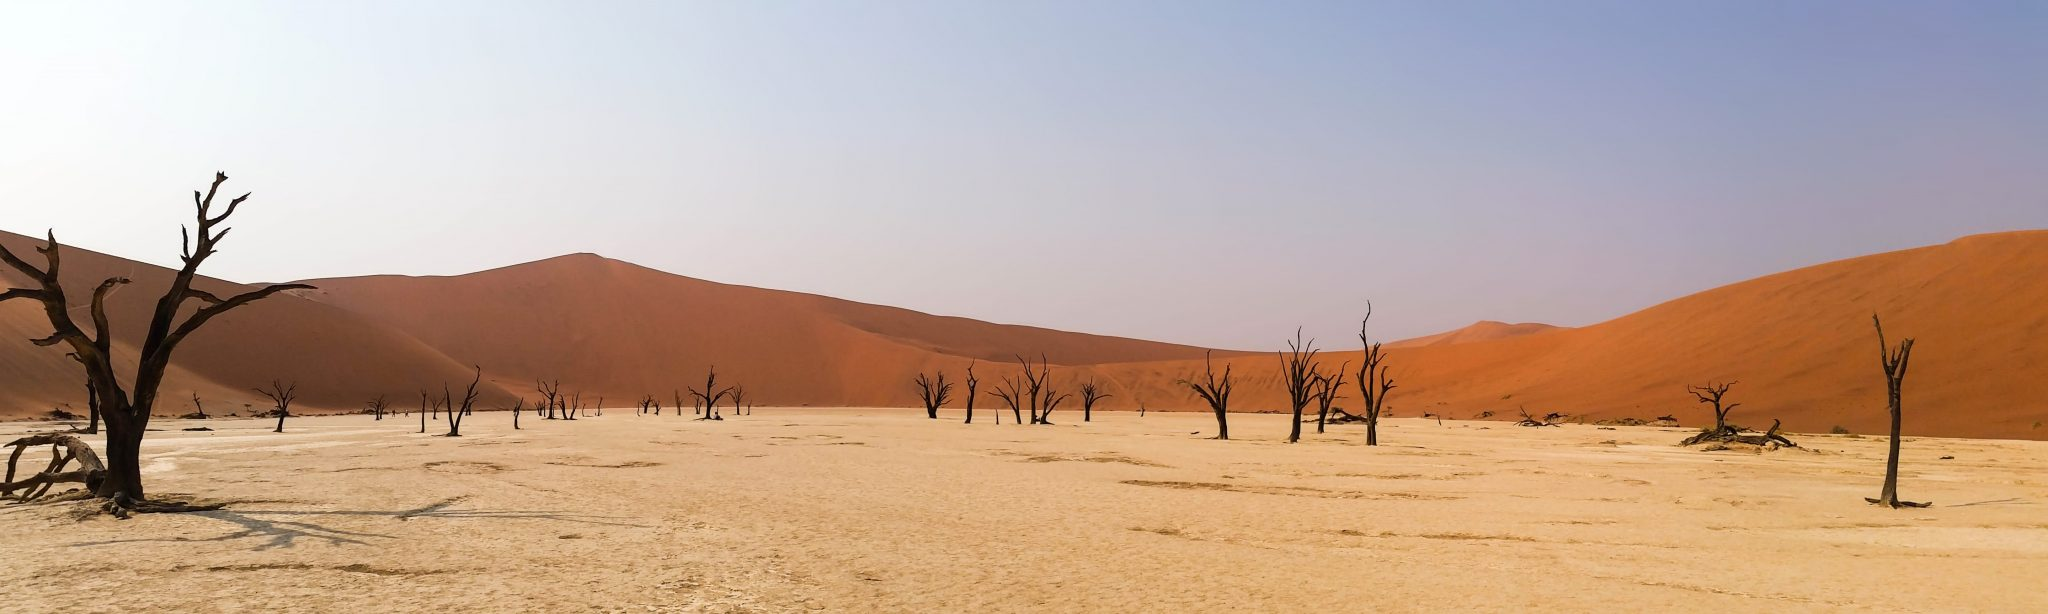 africa-namibia-landscape_PD